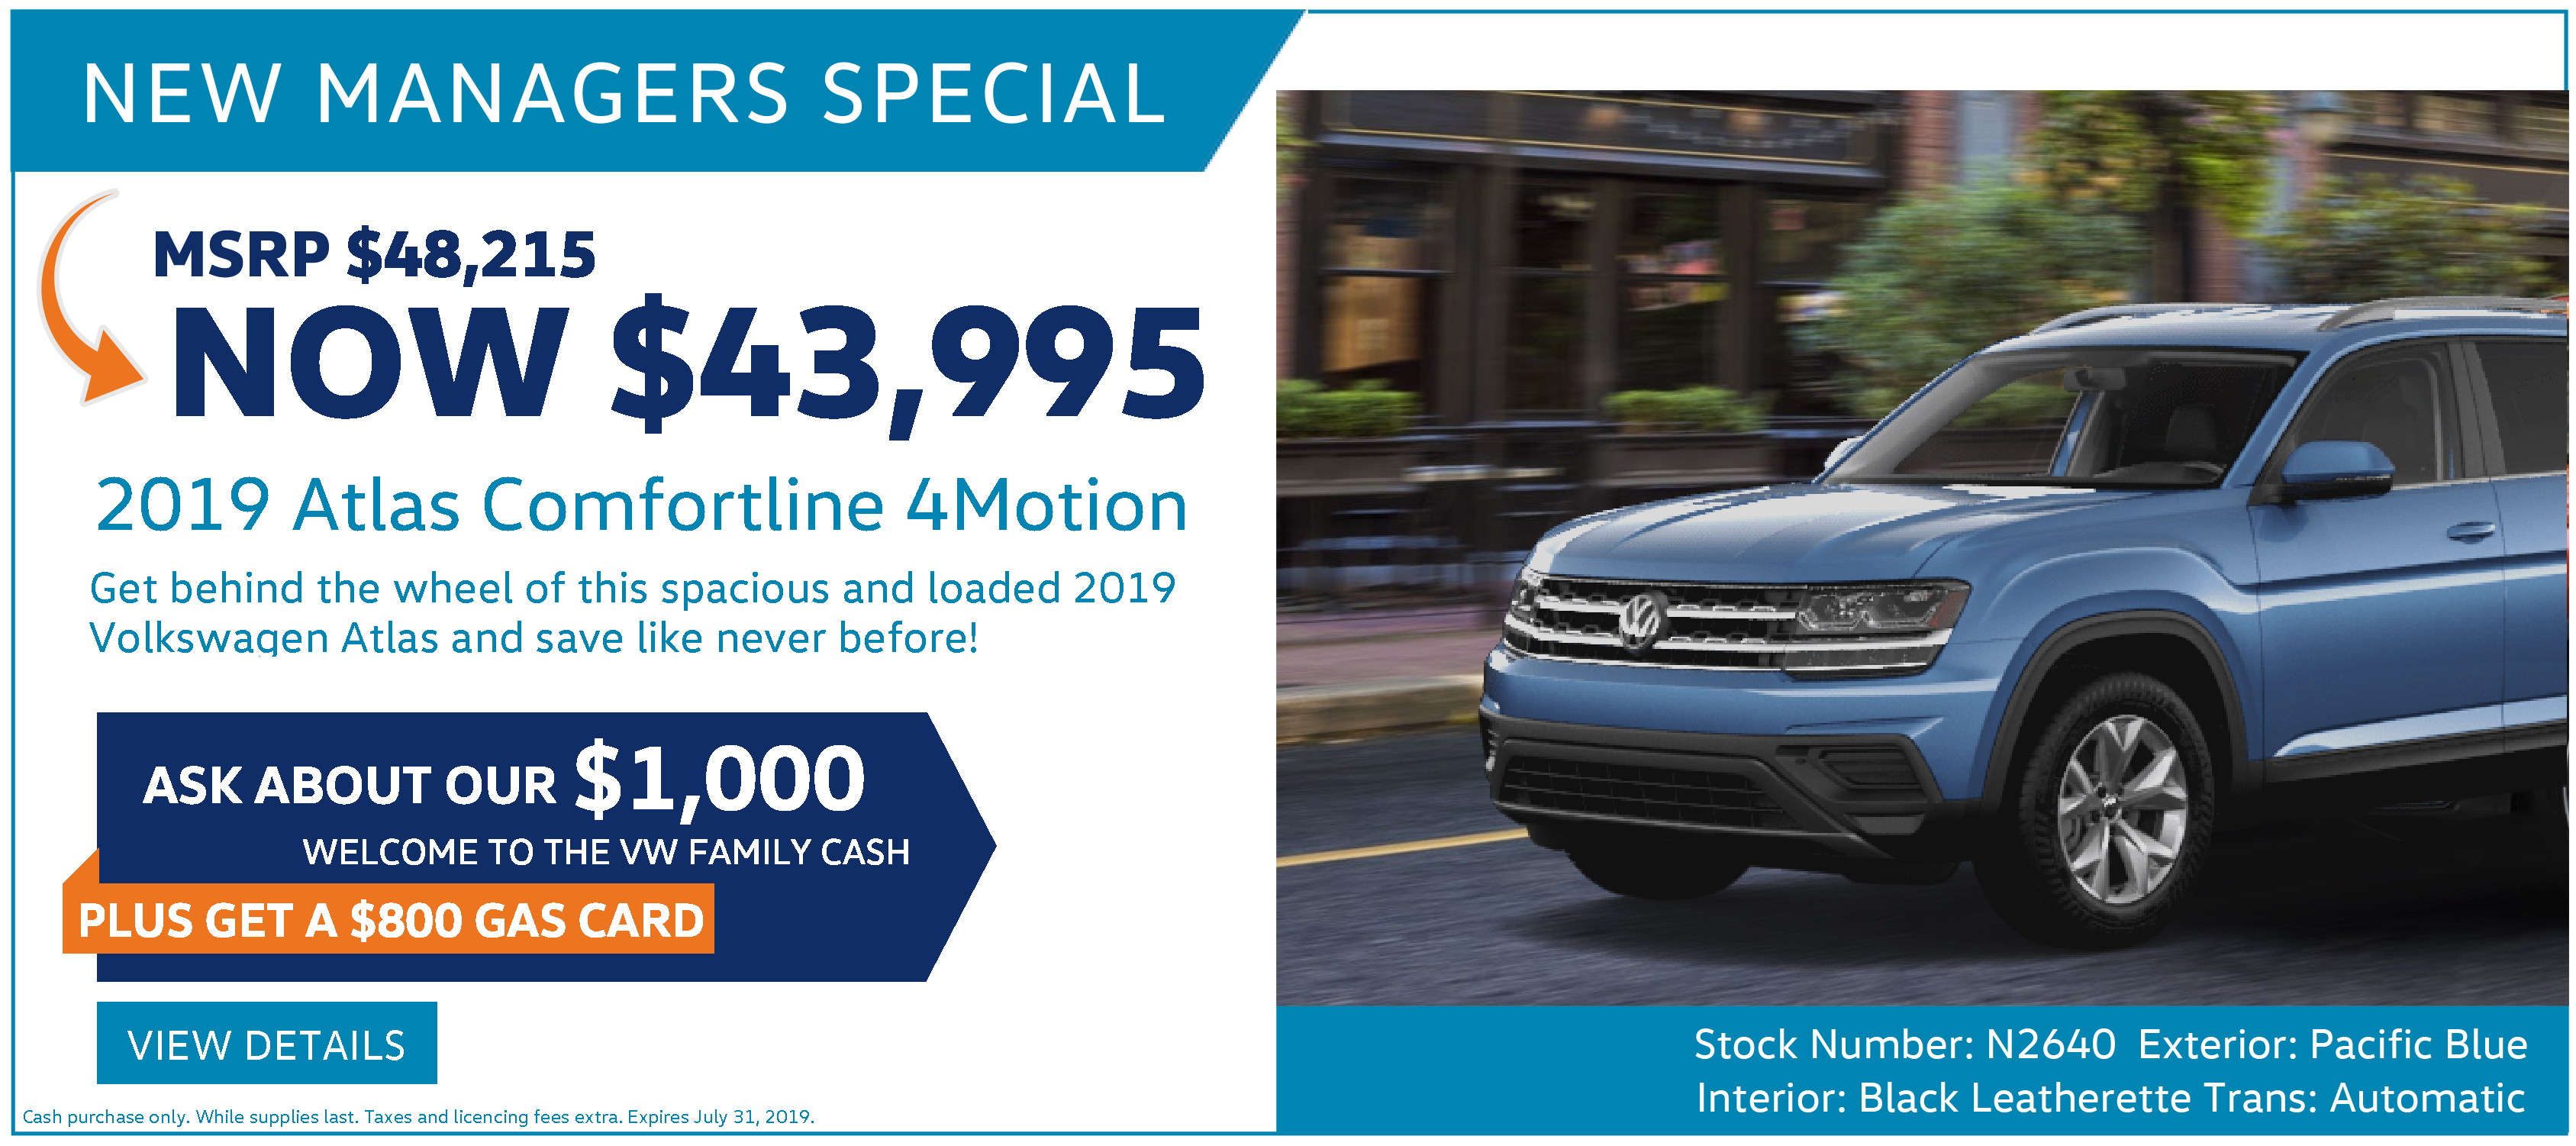 New Managers Special July Volkswagen Atlas Ottawa